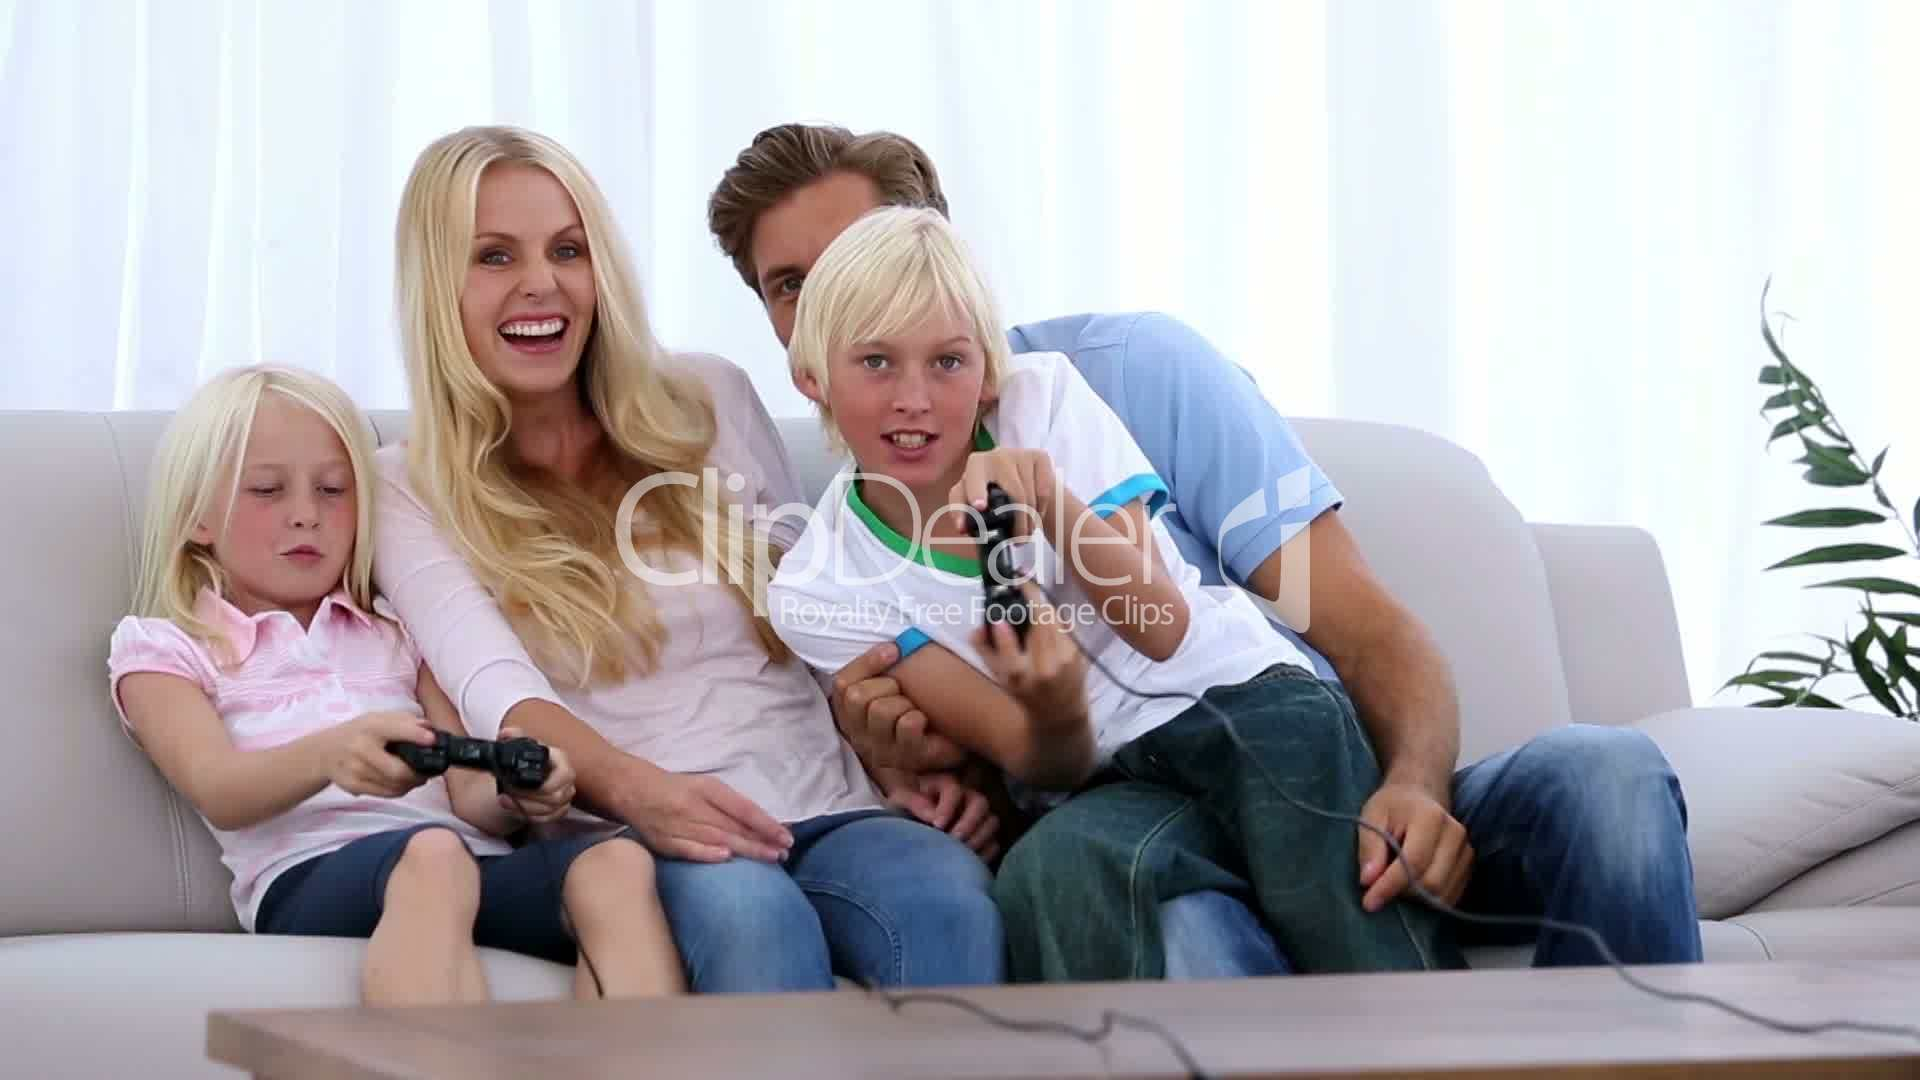 Family playing video games together Royaltyfree video